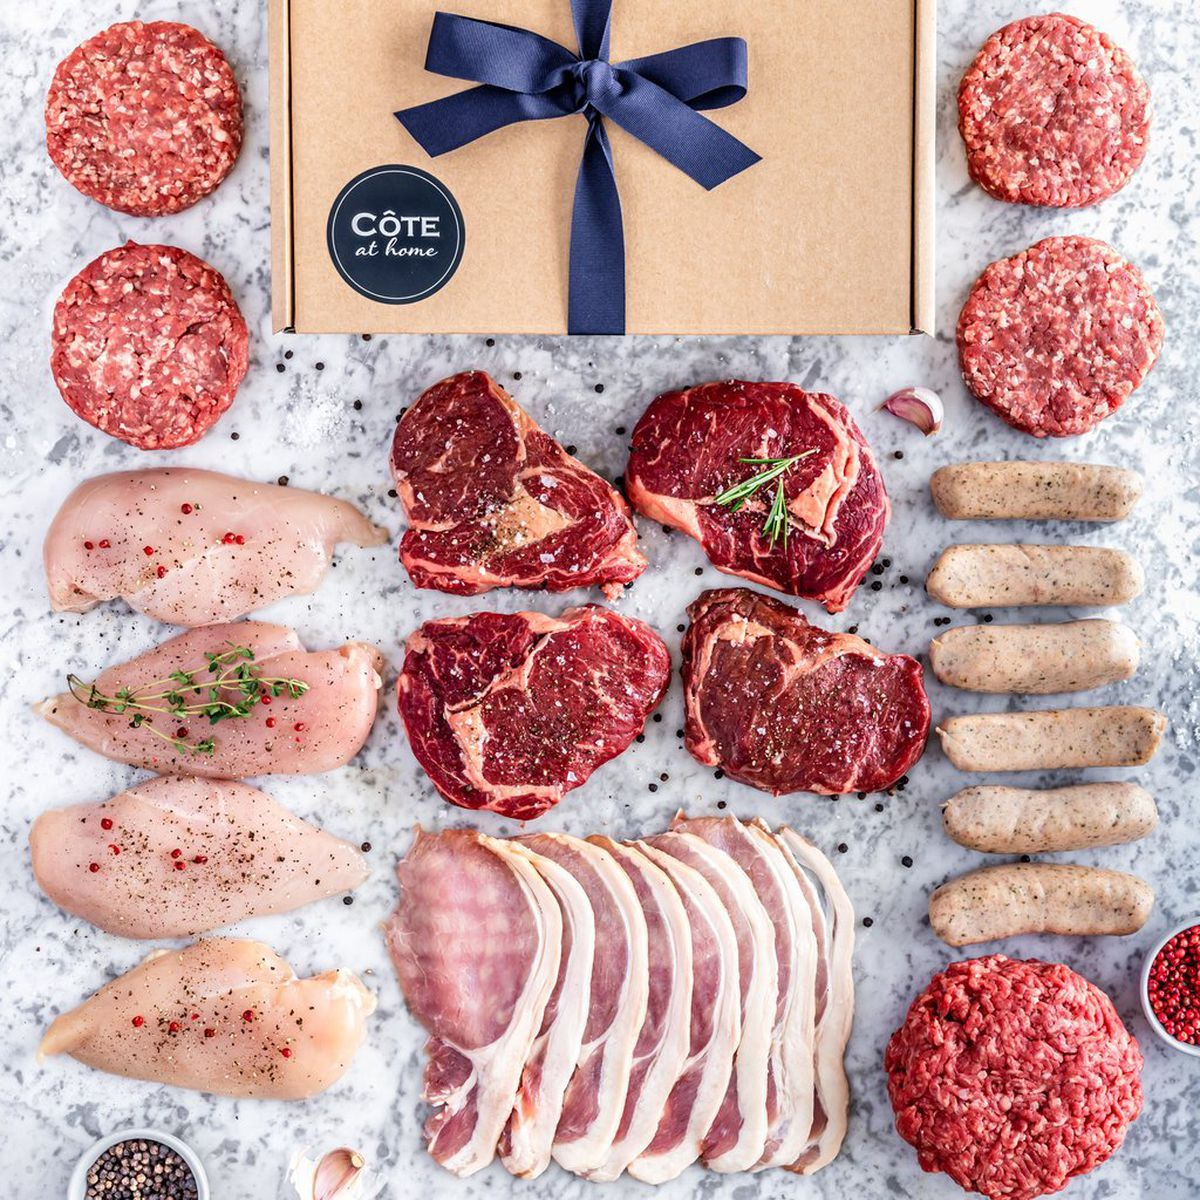 Meat boxes keep famliies going for a while